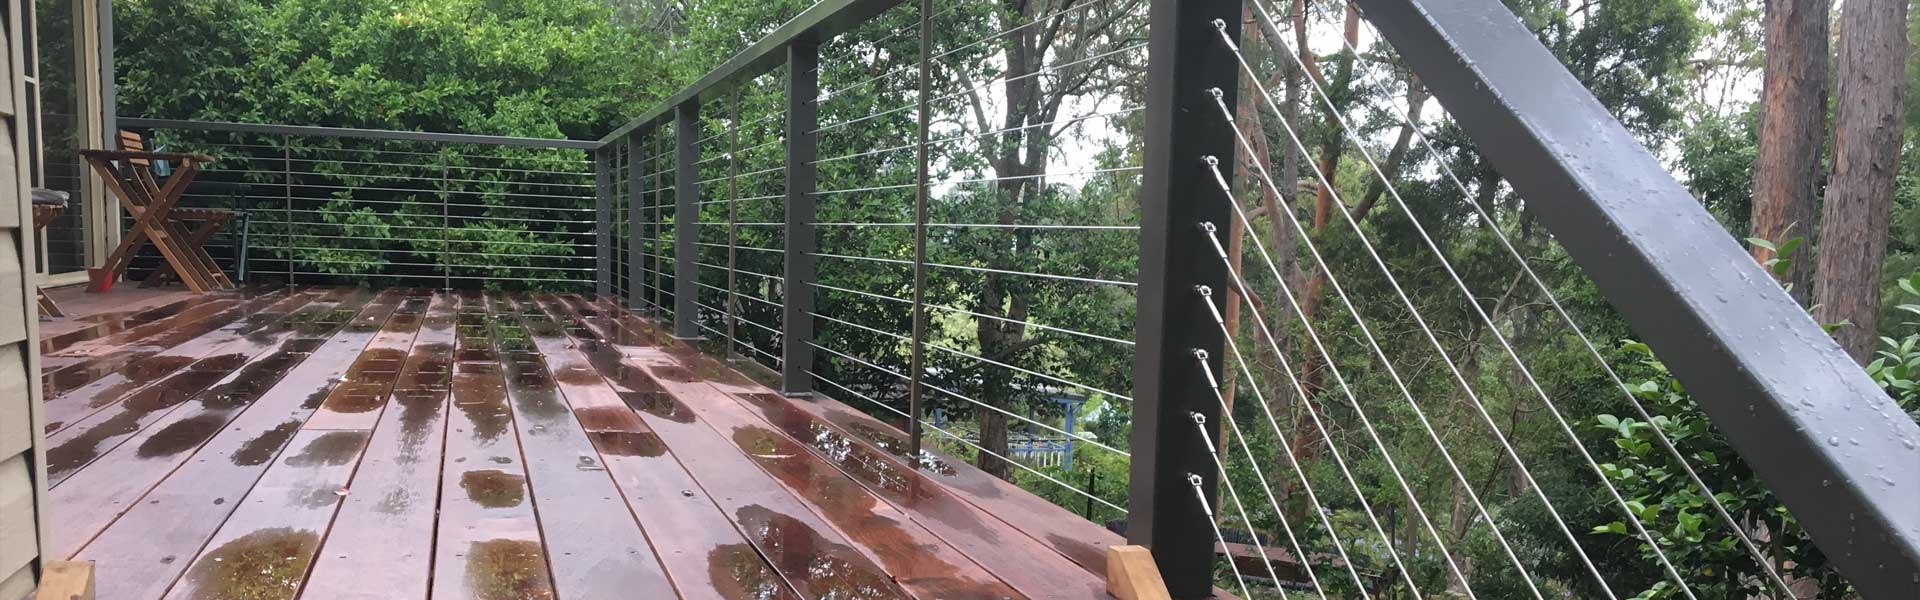 Stainless Steel Wire Handrails